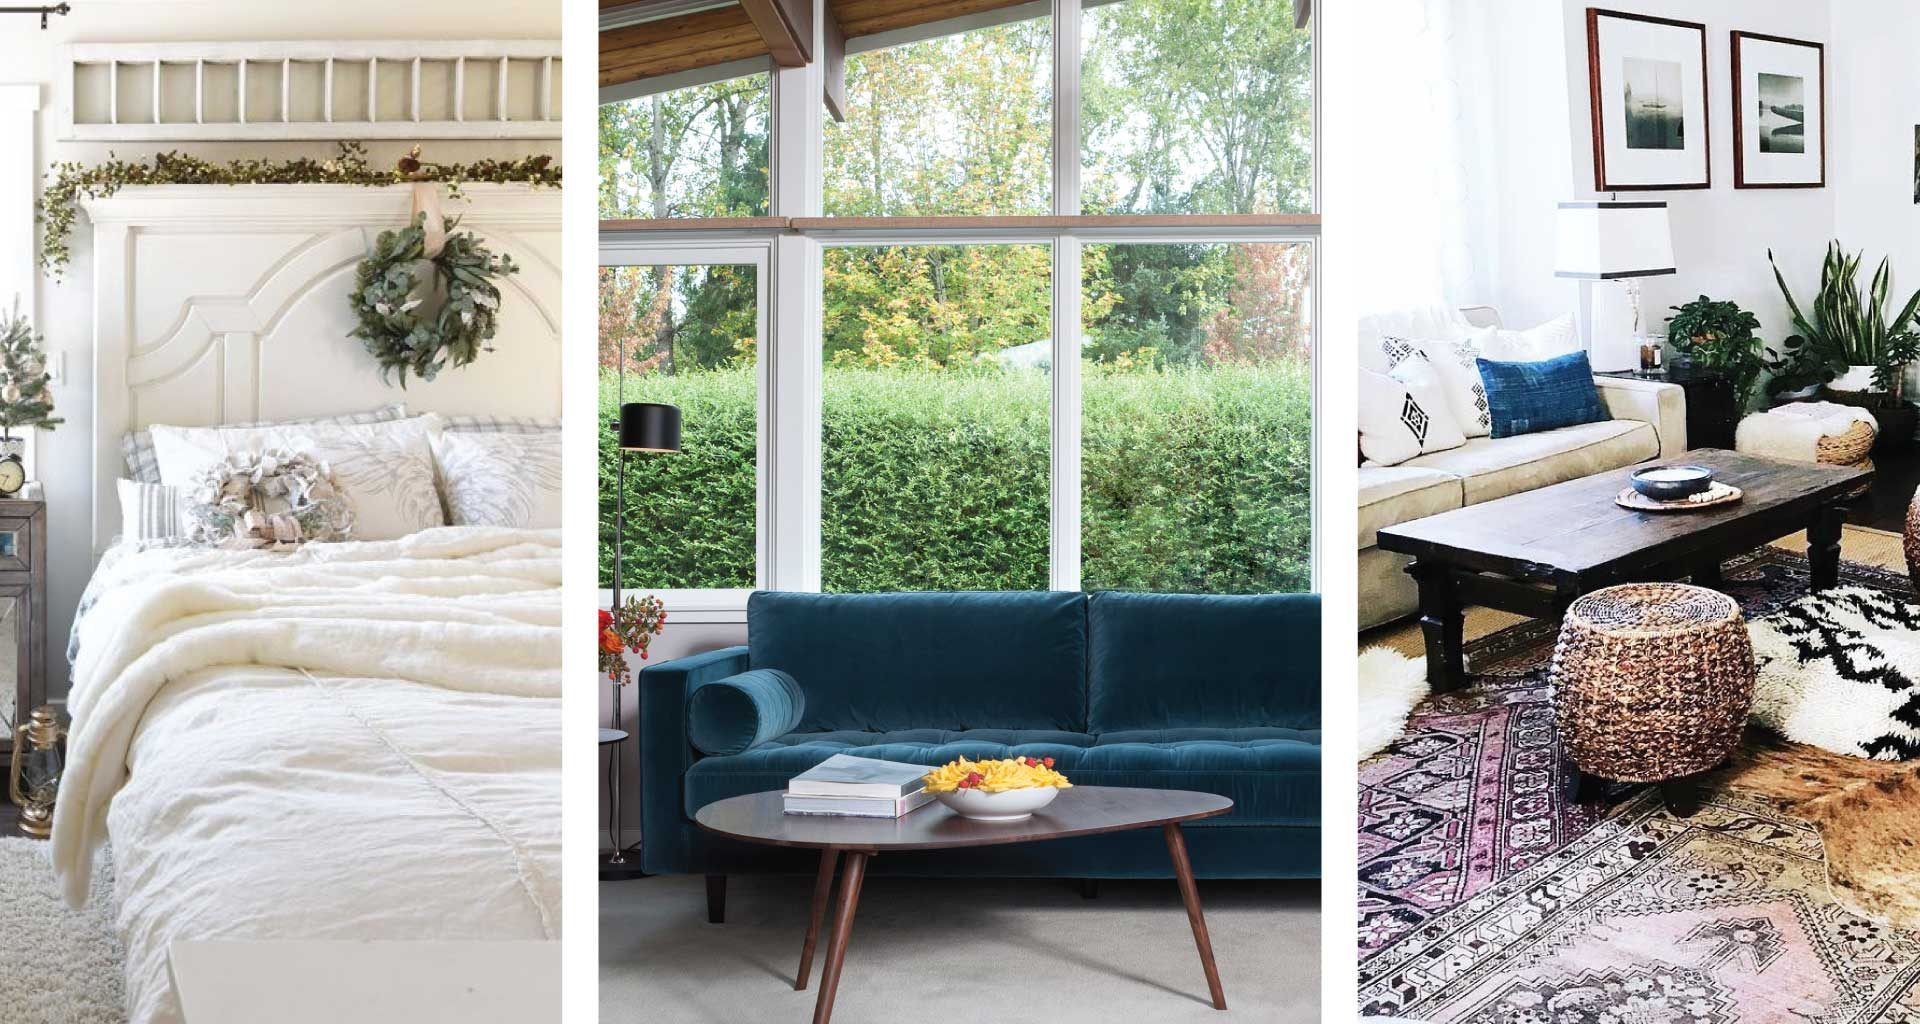 Interior Design Styles: 8 Popular Types Explained